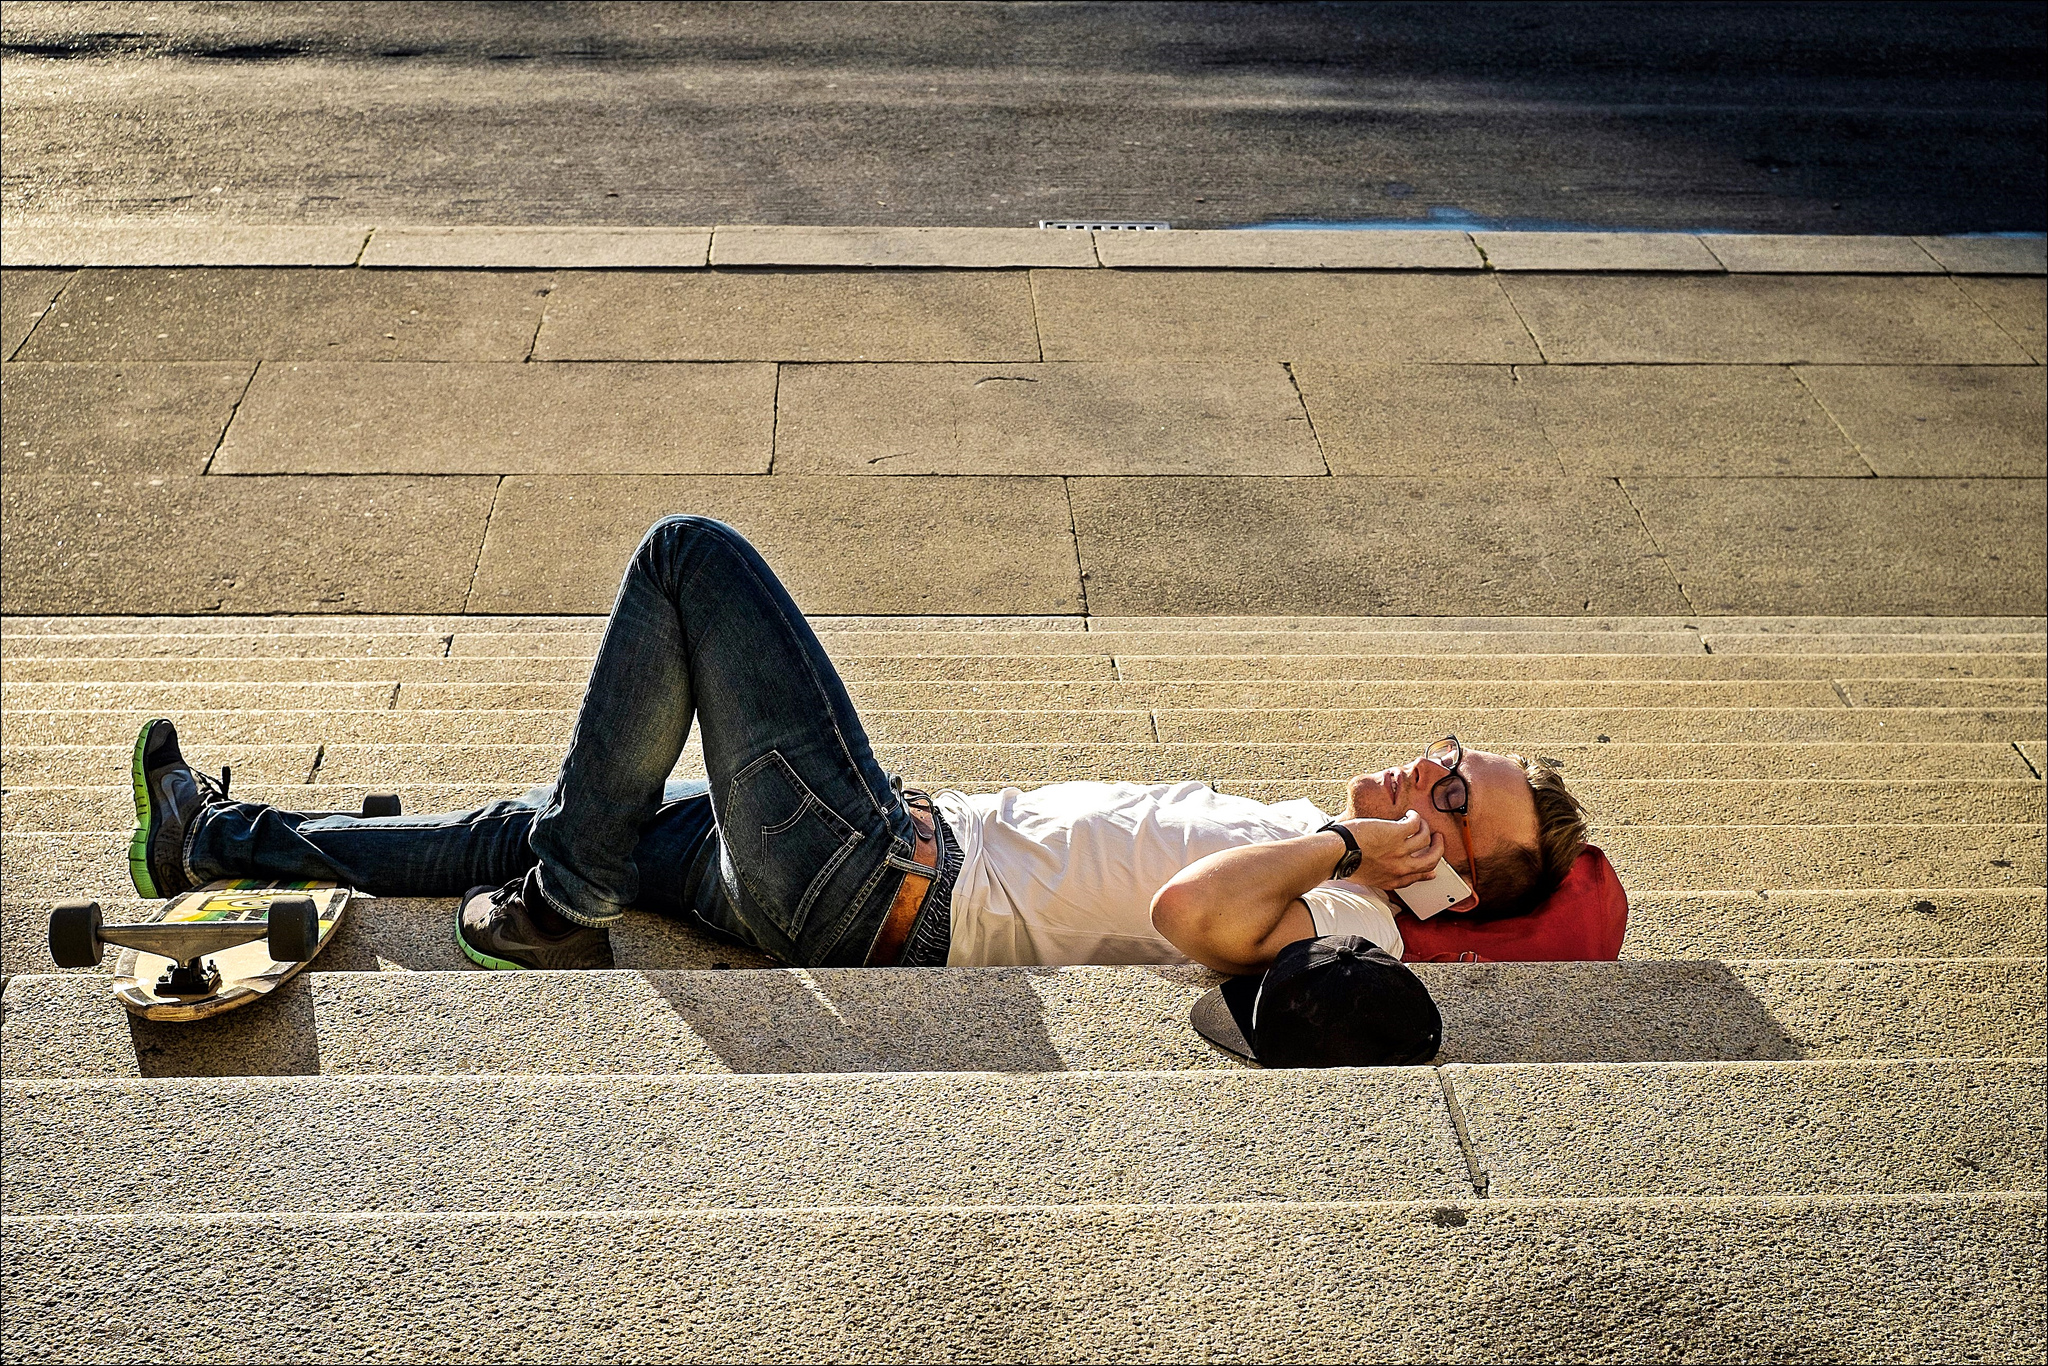 Man lies comfortably on his back in the sun on public steps, his skateboard at this feet, phone in hand.